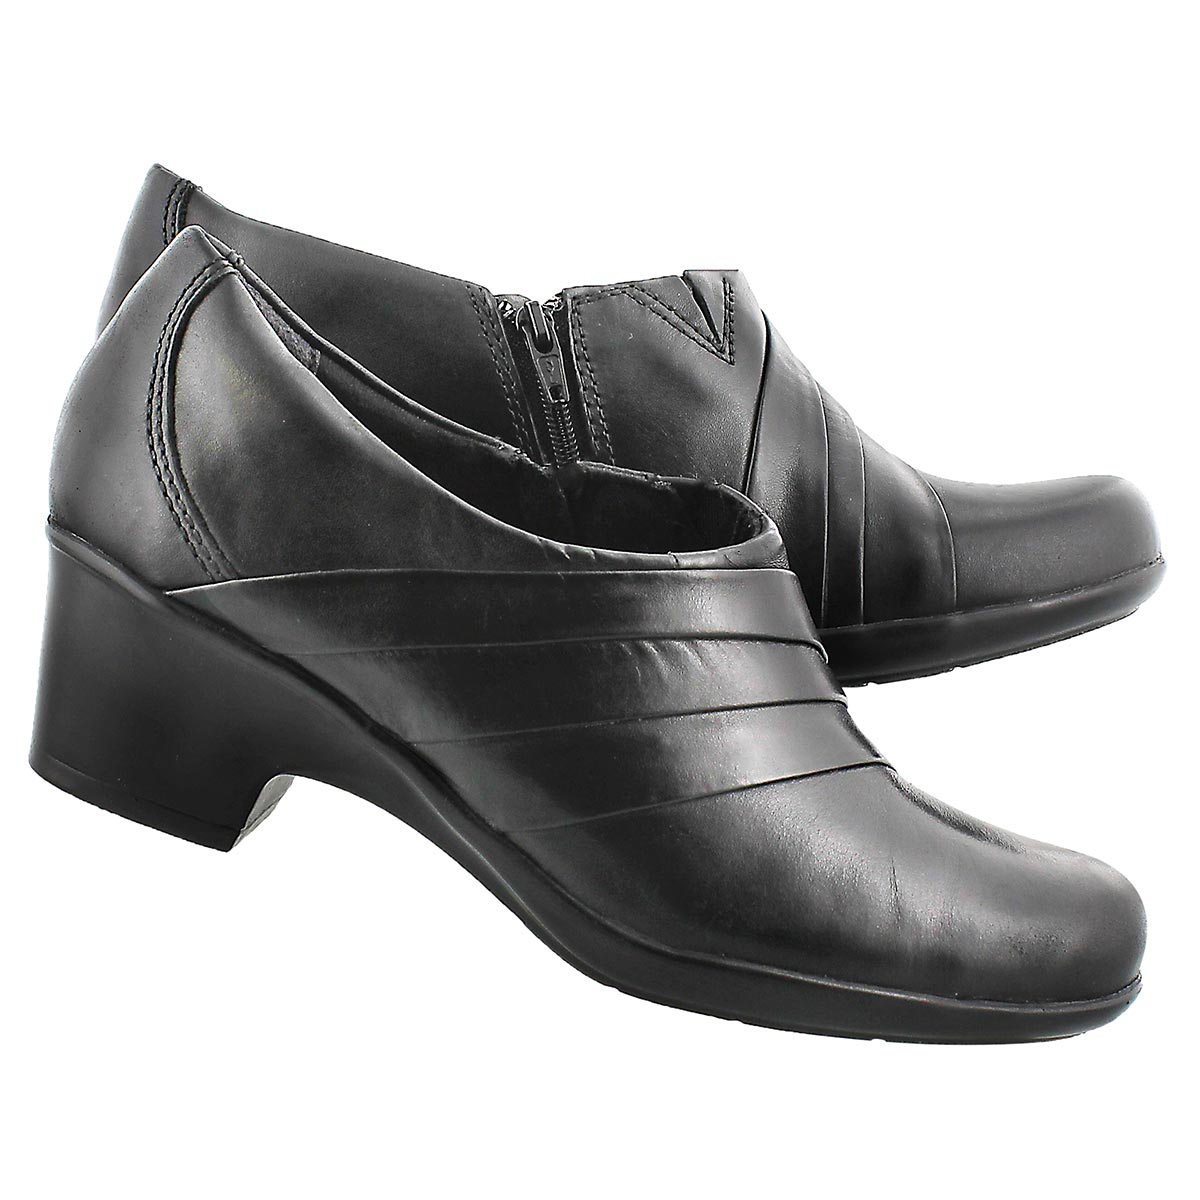 Lds Genette Bend blk slip on dress shoe